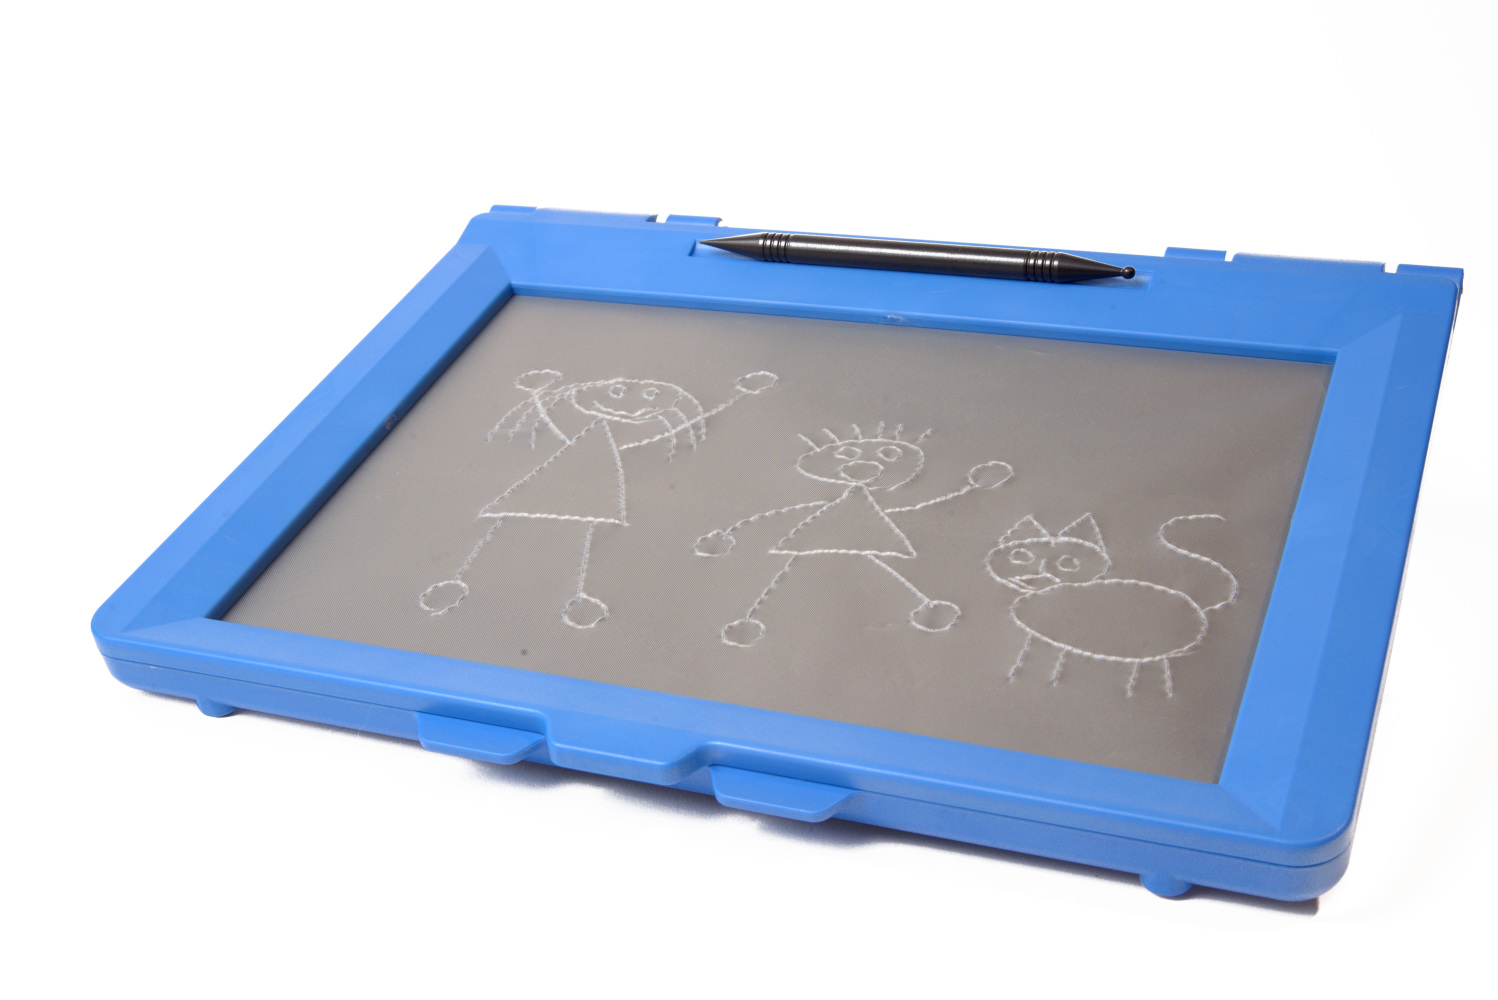 A angle view of a blue intact sketchpad with a drawing of two stick figures and a cat